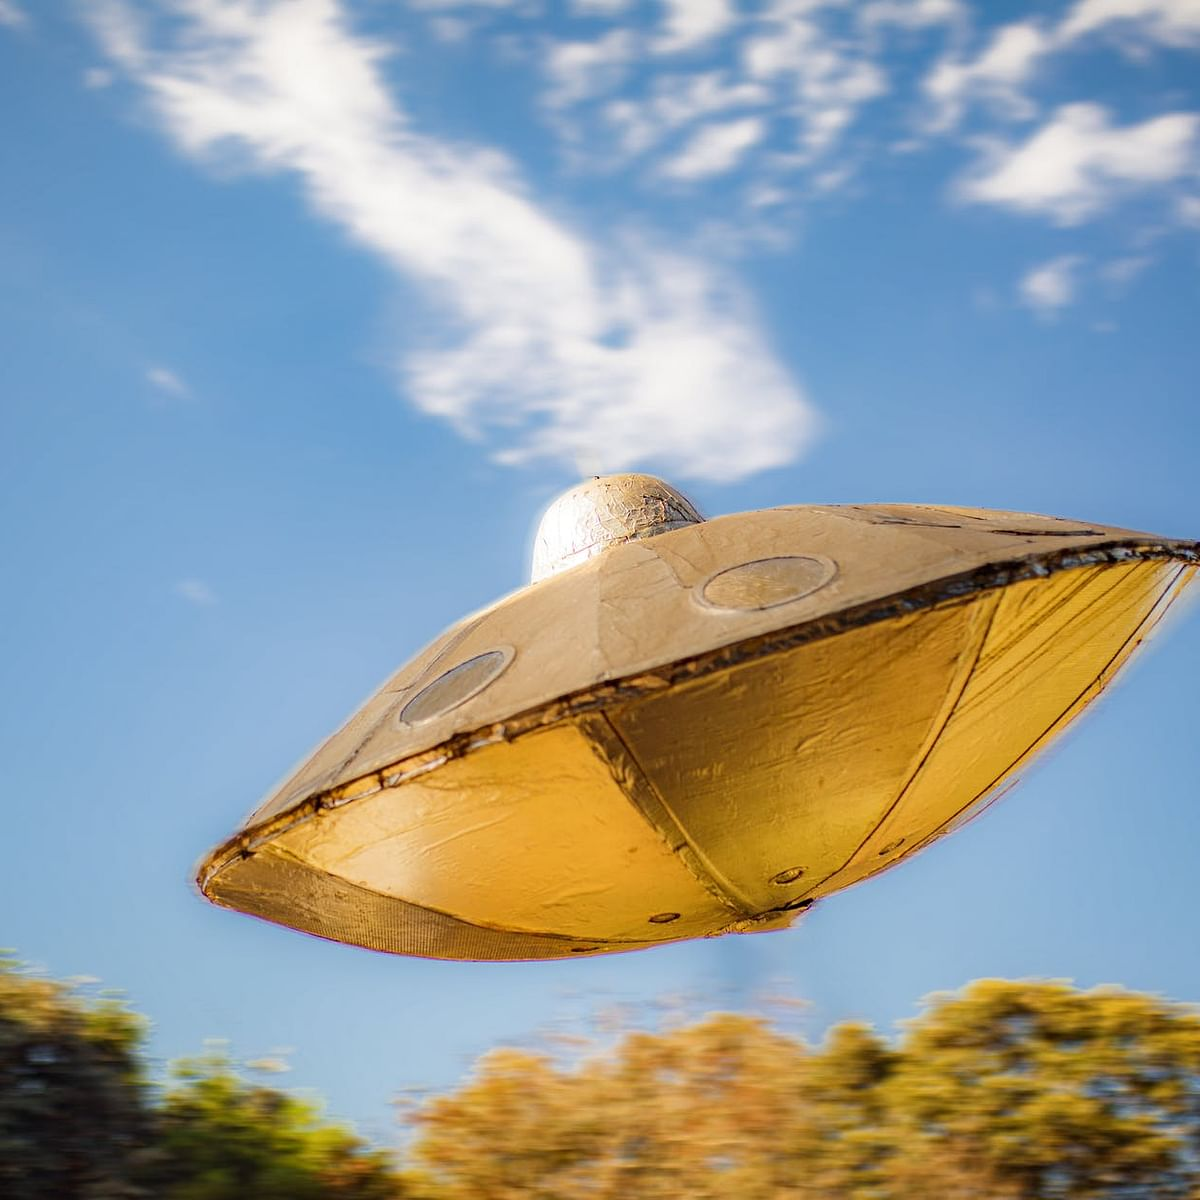 Did a US pilot really spot UFO during flight? FBI made aware of possible sighting